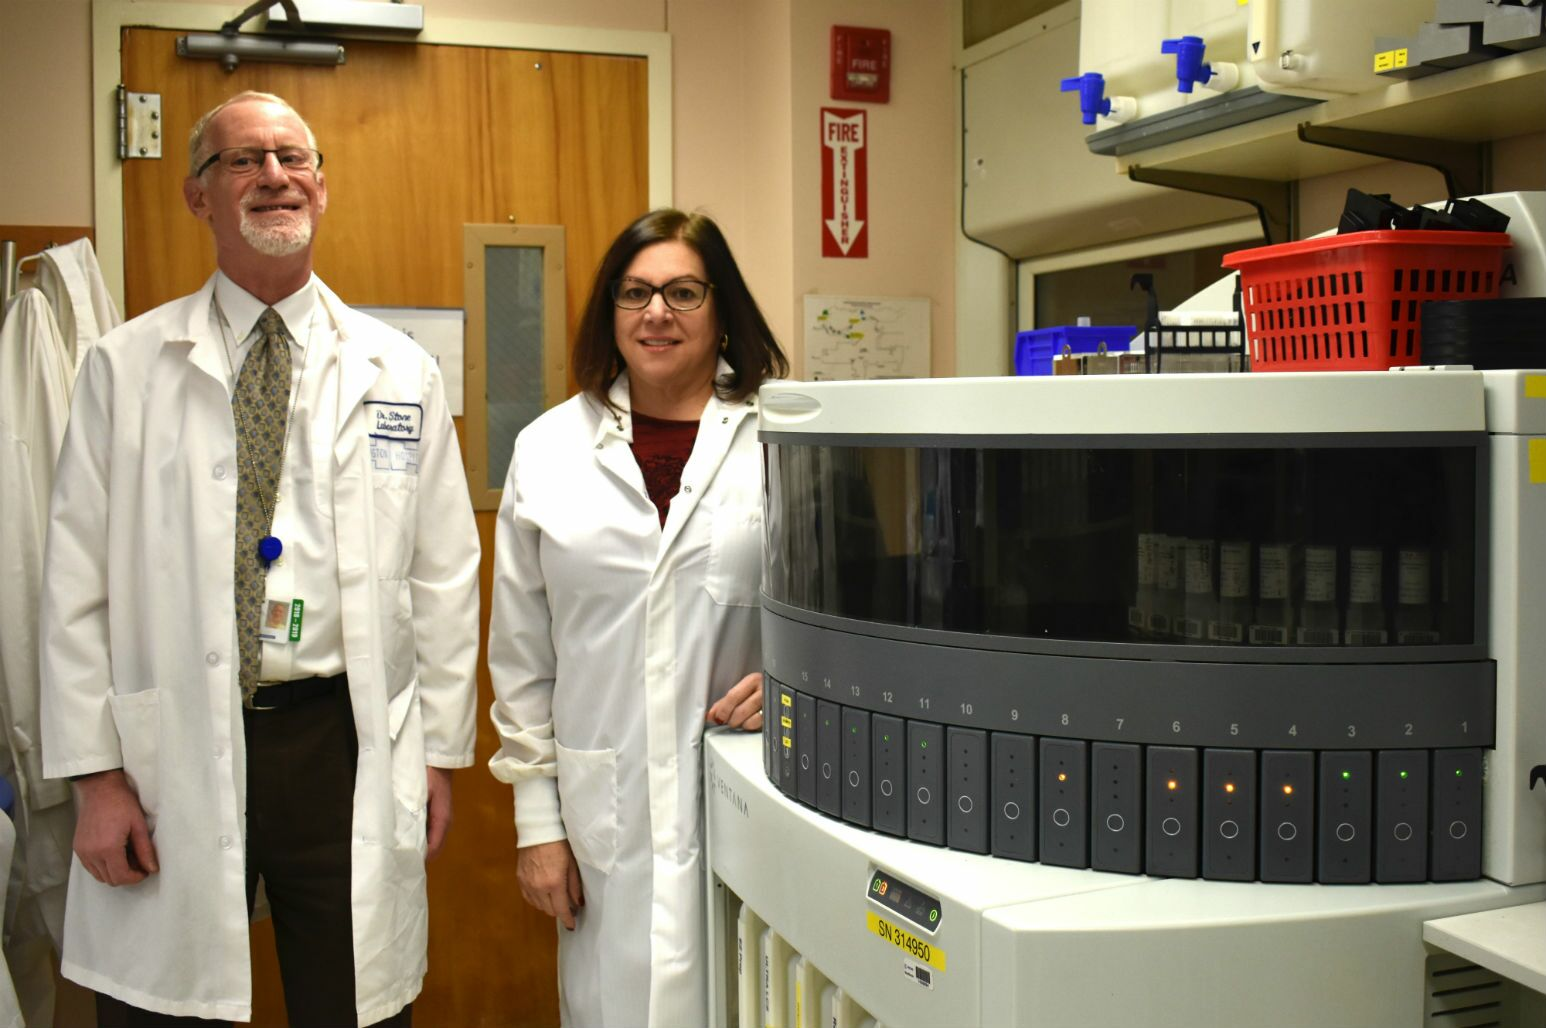 Huntington Hospital's Dr. Gary Stone and Susan Schwartz with the Ventana Benchmark Ultra machine that helps analyze PD-L1 samples.